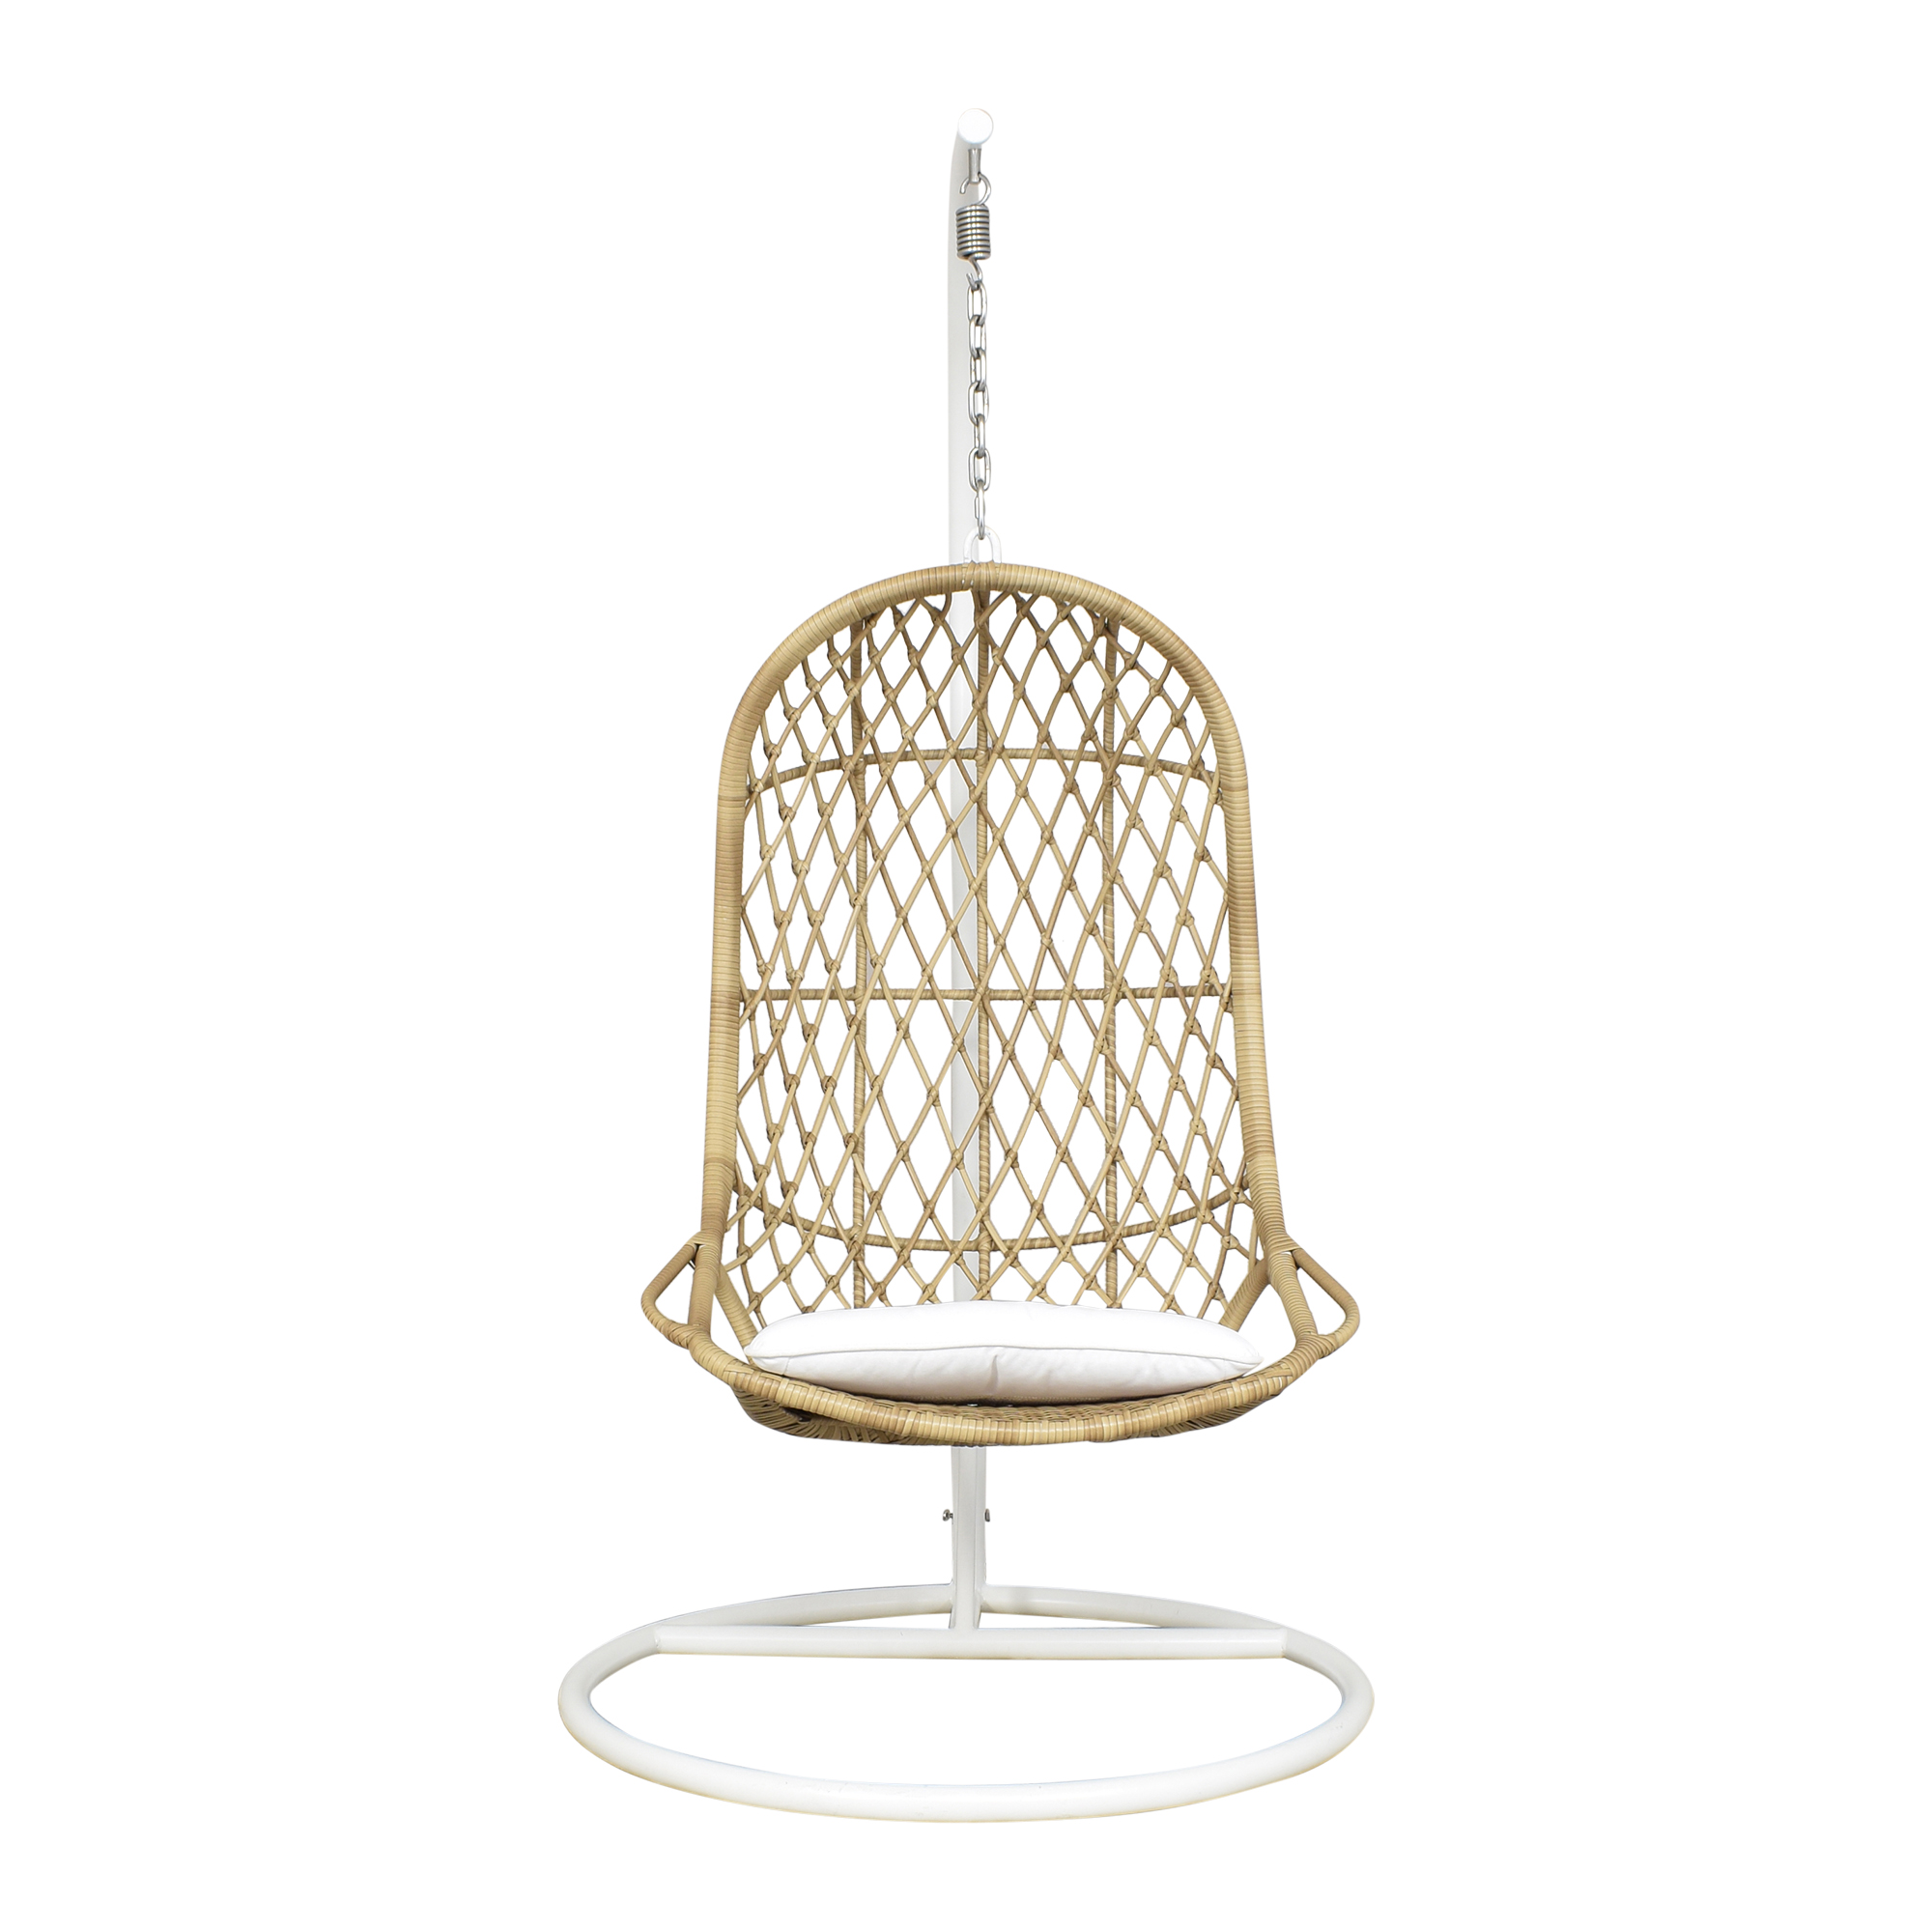 buy Serena & Lily Capistrano Hanging Chair & Stand Serena & Lily